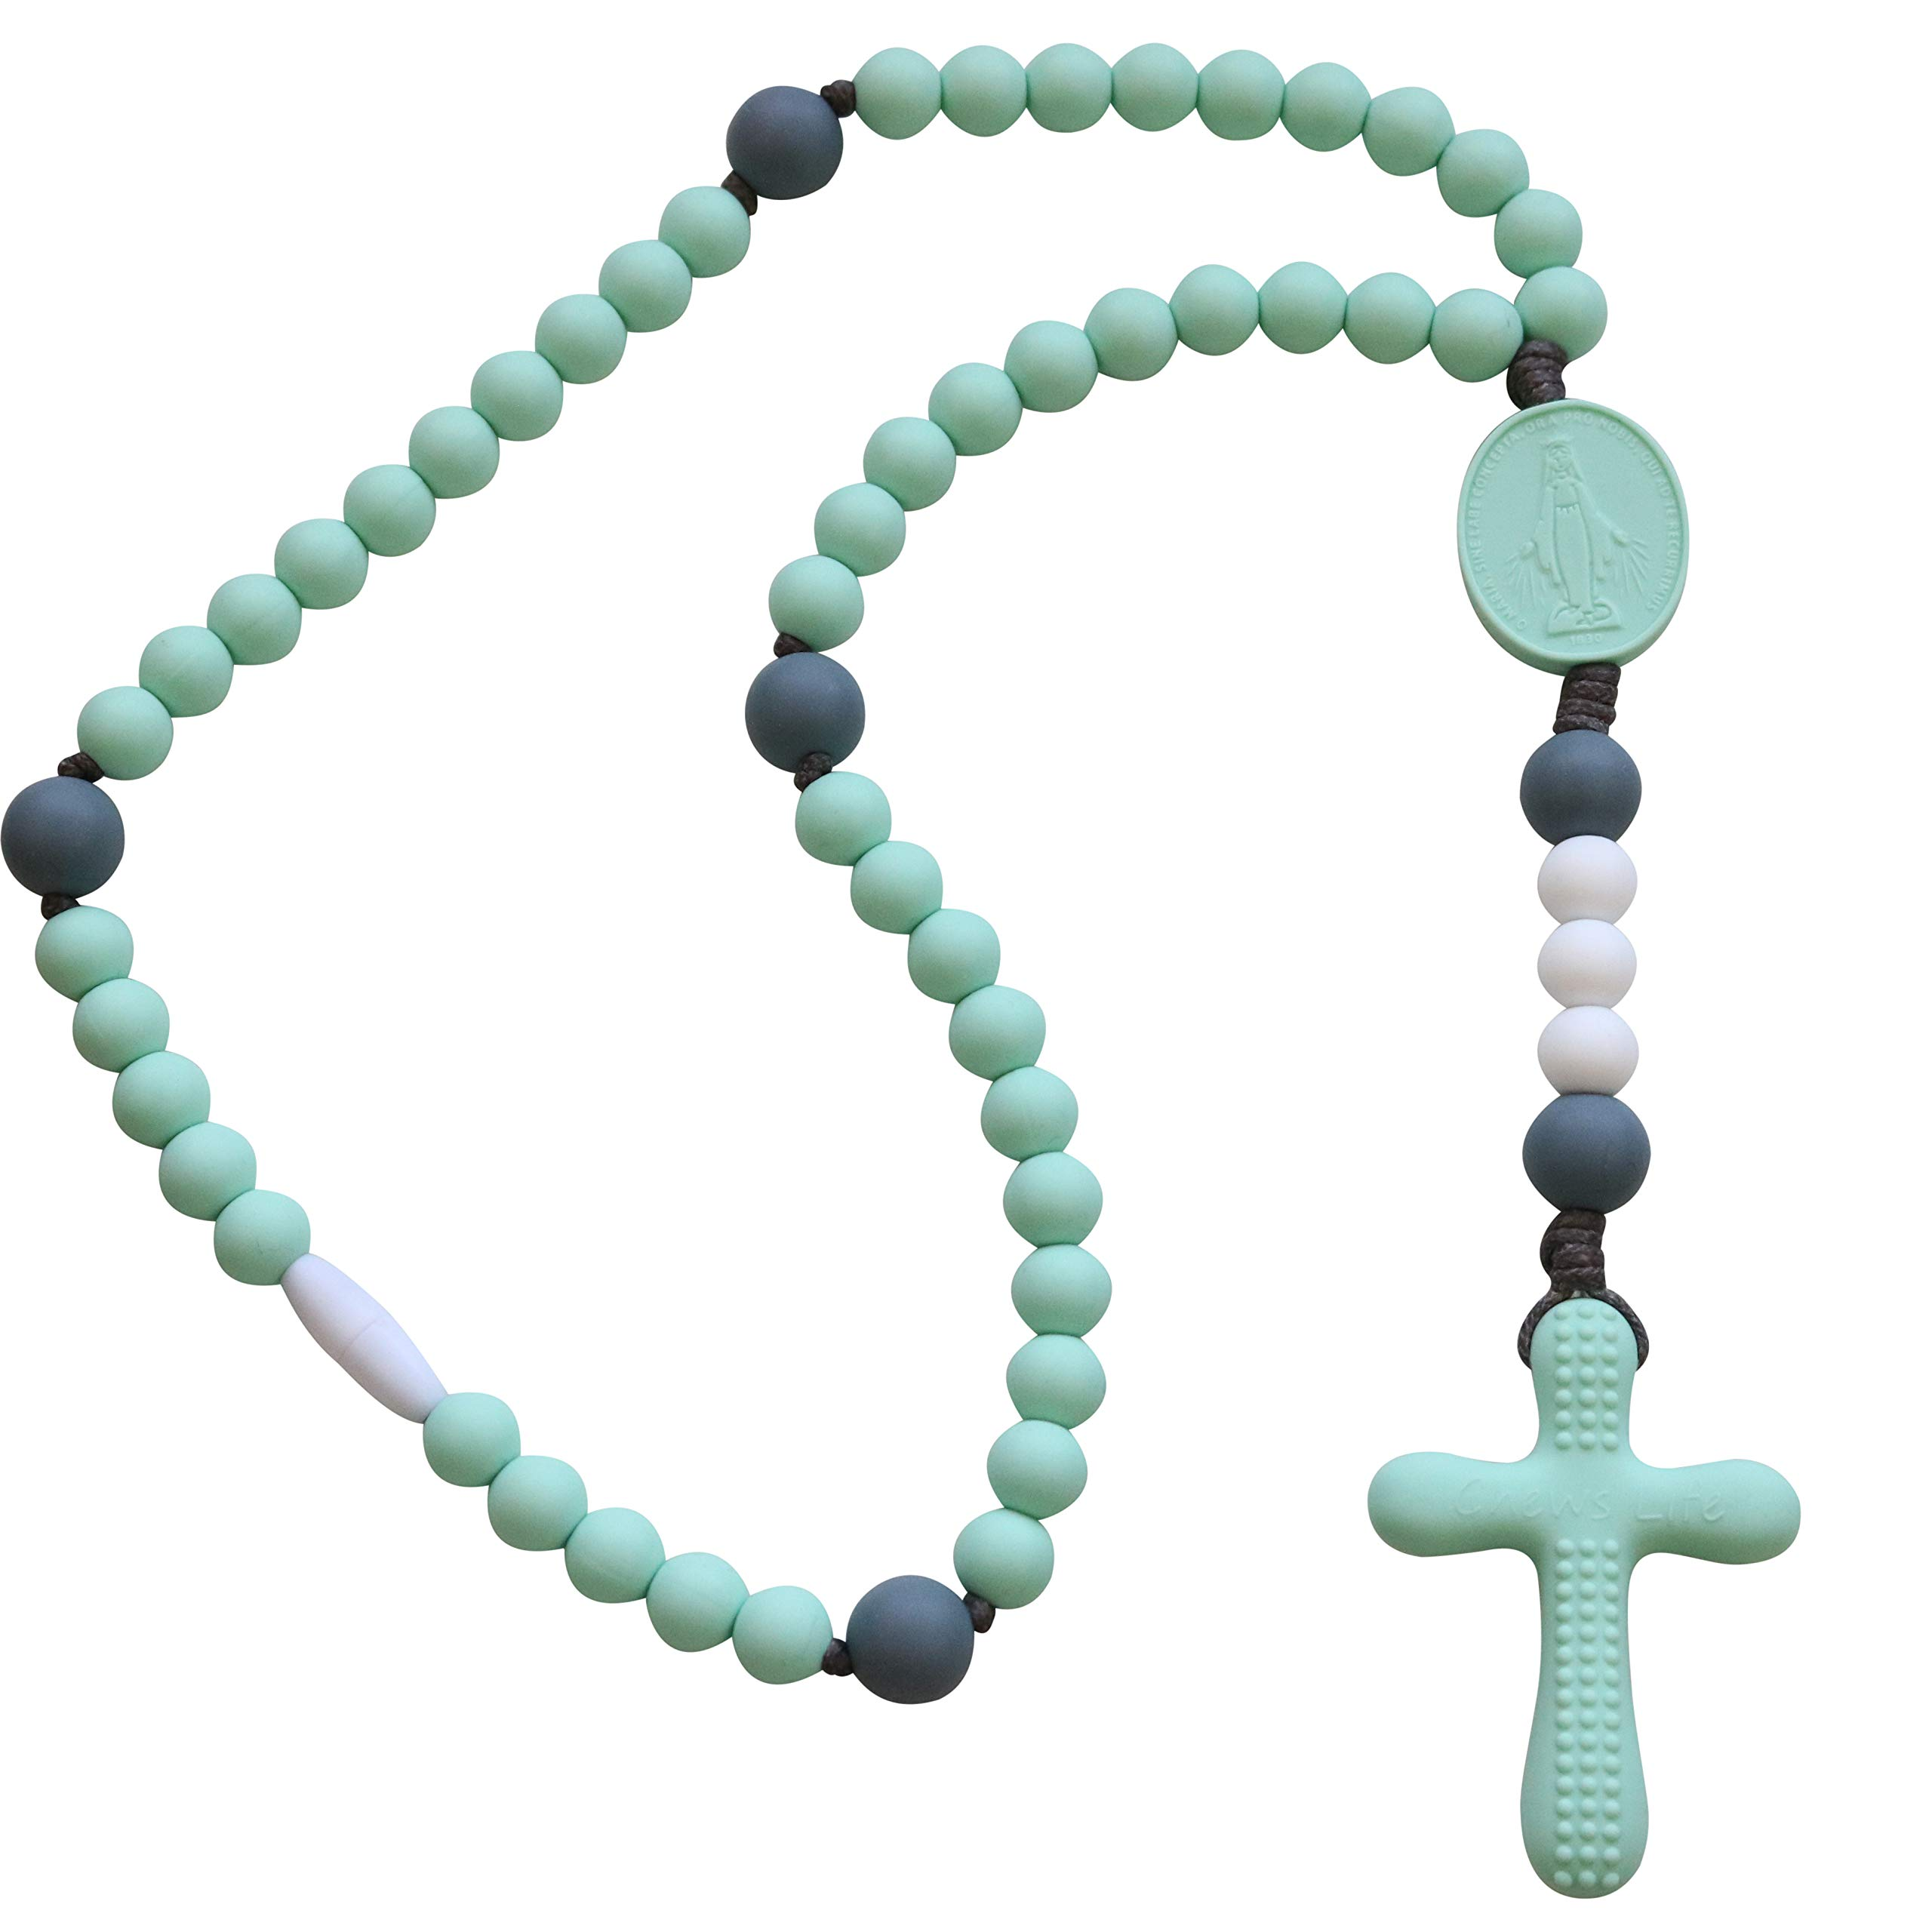 Chews Life - Teething Rosary Beads - Baptism Gift & Mass Toy for Catholic Girls & Boys, Handmade, Silicone Beads & Organic Cotton Cord - CPSIA Certified Safe - Mint & Gray